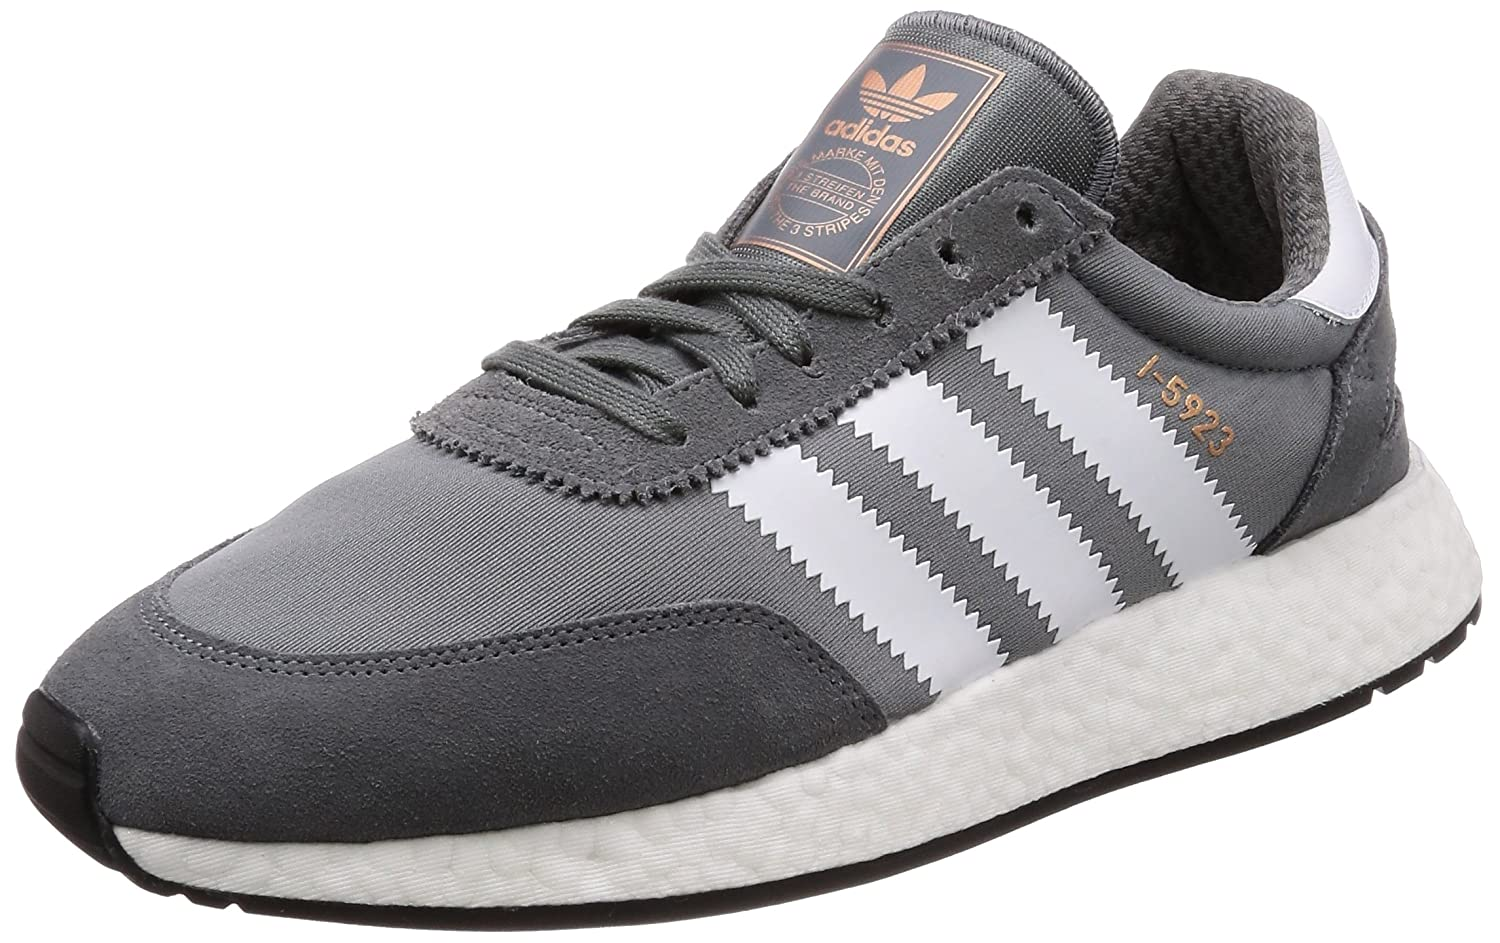 f87bd2f3ab8c41 adidas Men s s Iniki Runner Fitness Shoes  adidas Originals  Amazon.co.uk   Shoes   Bags